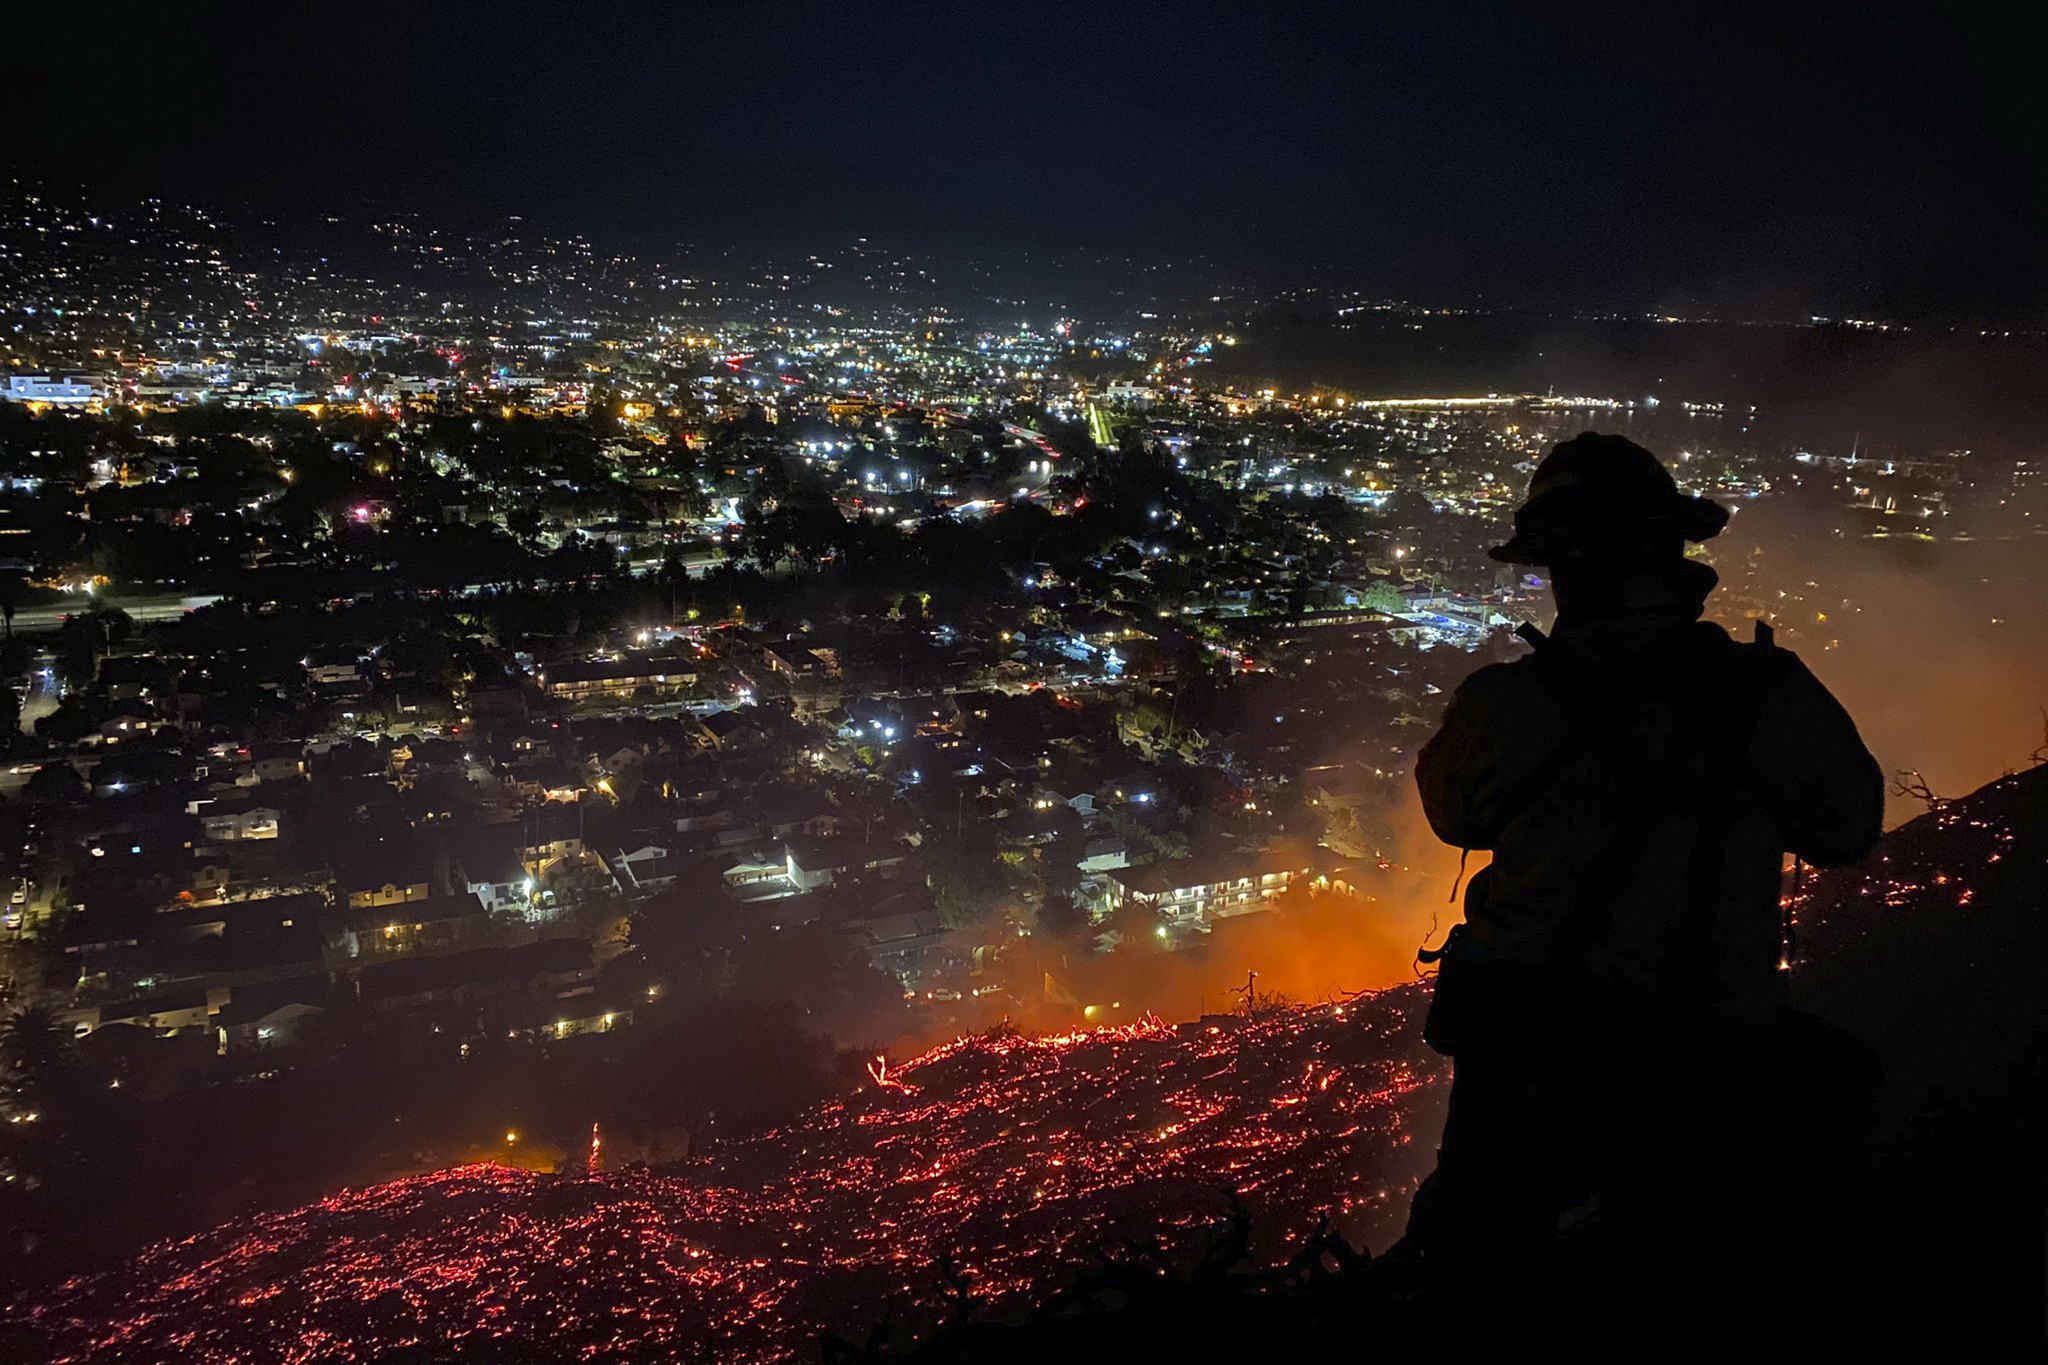 In this photo provided by the Santa Barbara County Fire Department, firefighters battle the Loma Fire in Santa Barbara on May 20, 2021.